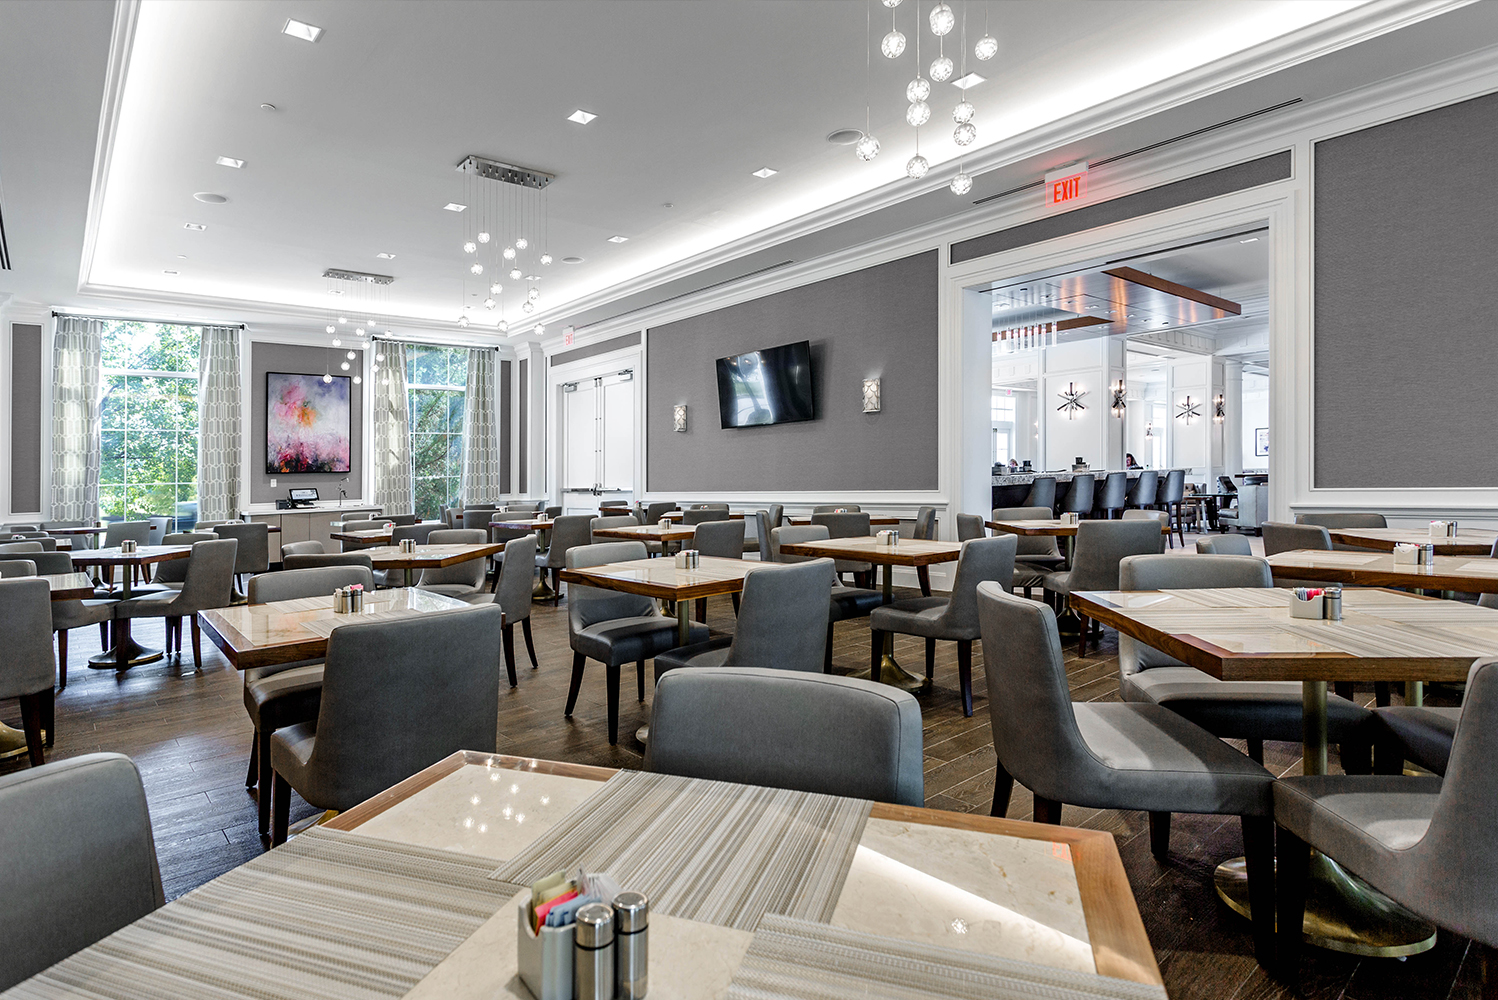 Olshan Properties completed the $27.3 million transformative interior redesign and amenity enhancement of the Hilton Columbus at Easton.